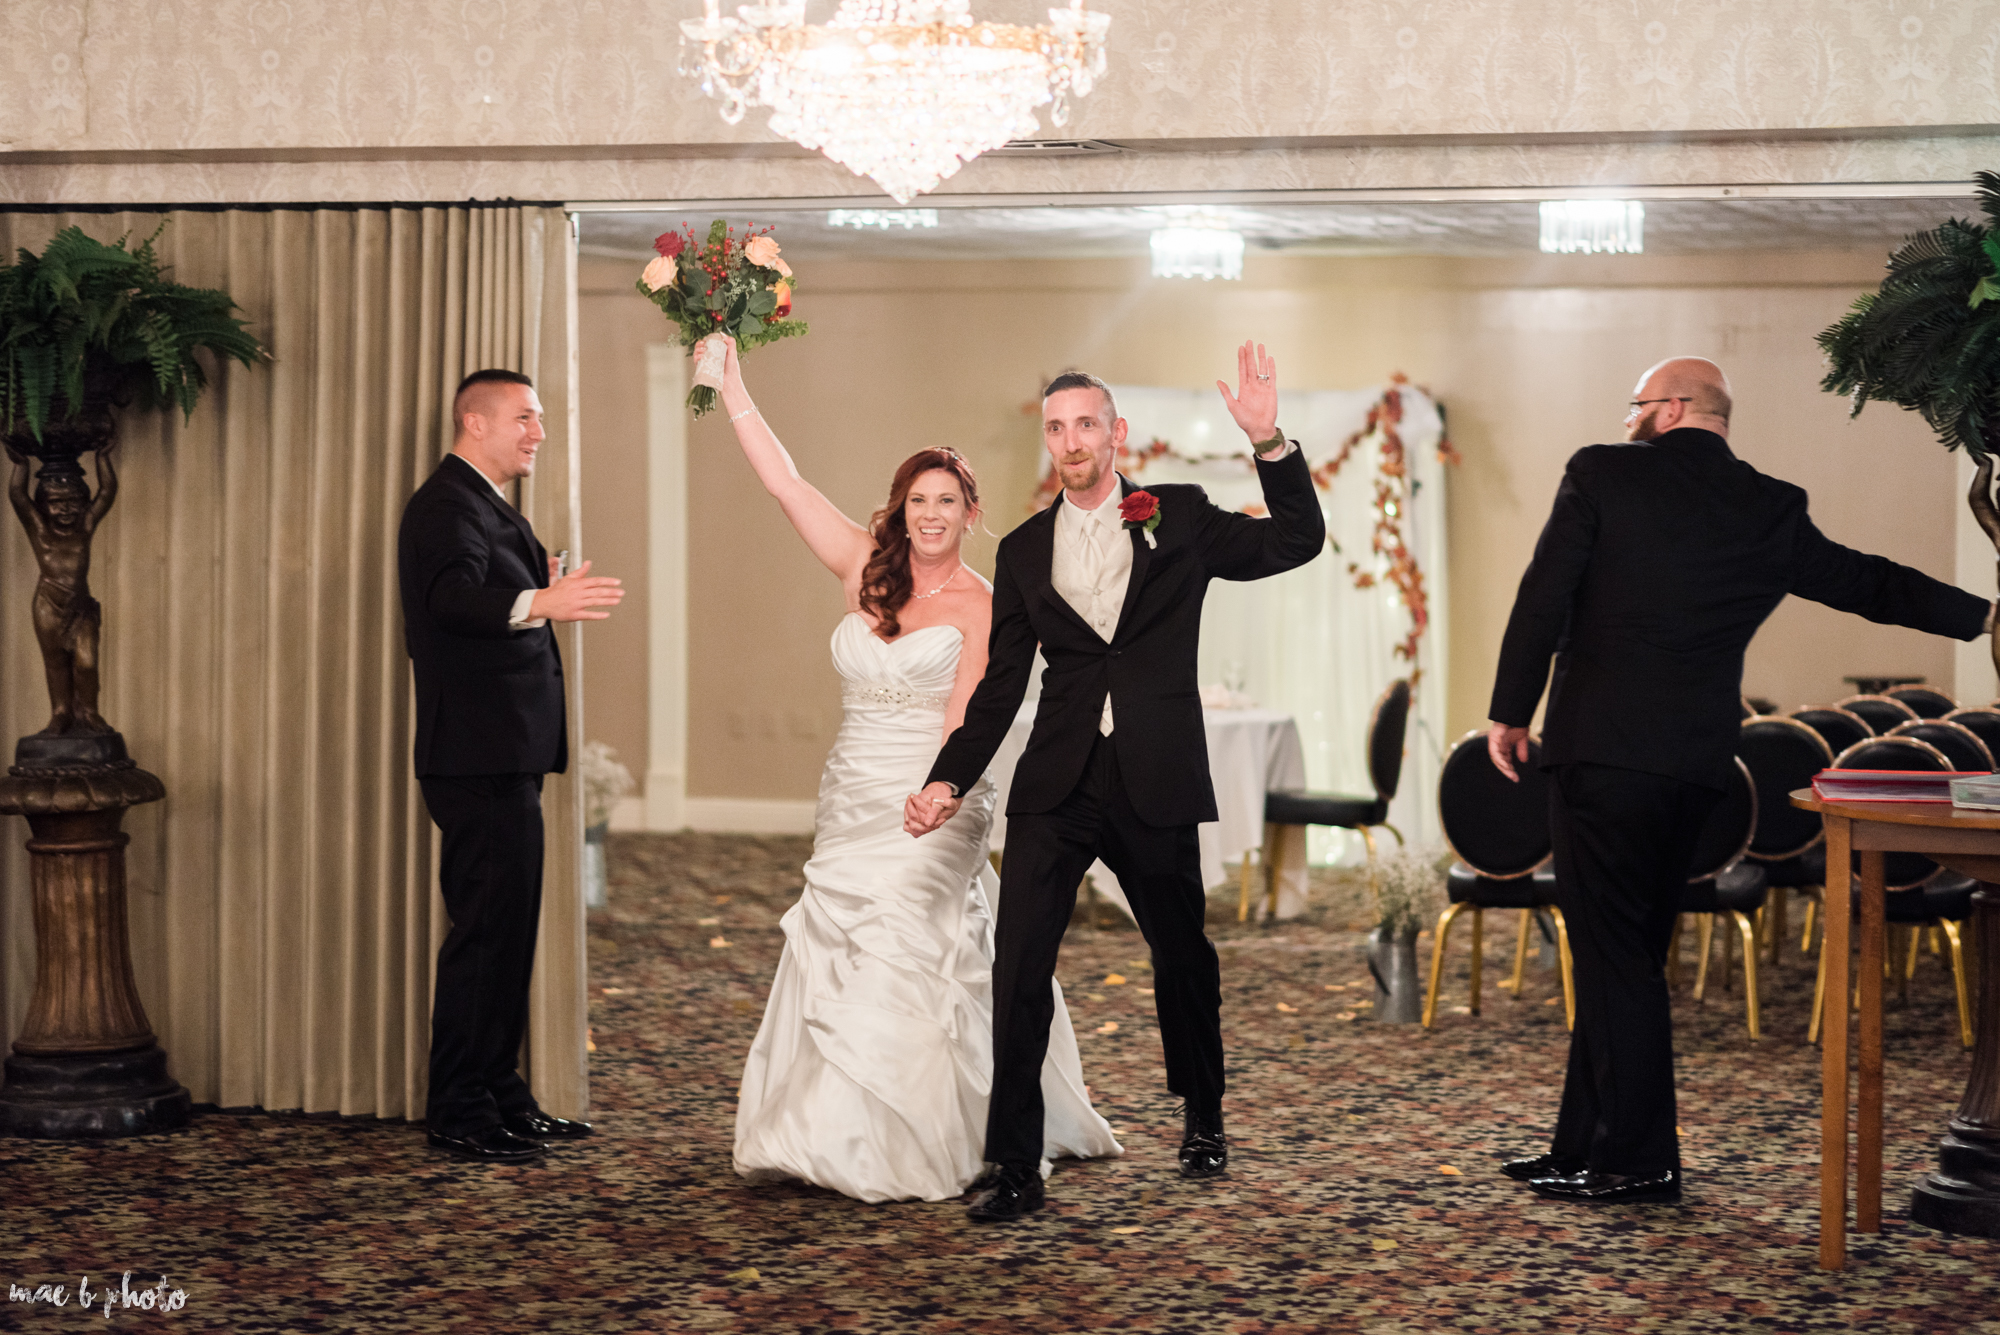 tracey and aaron's personal fall wedding at tiffany's banquet center in brookfield ohio-92.jpg